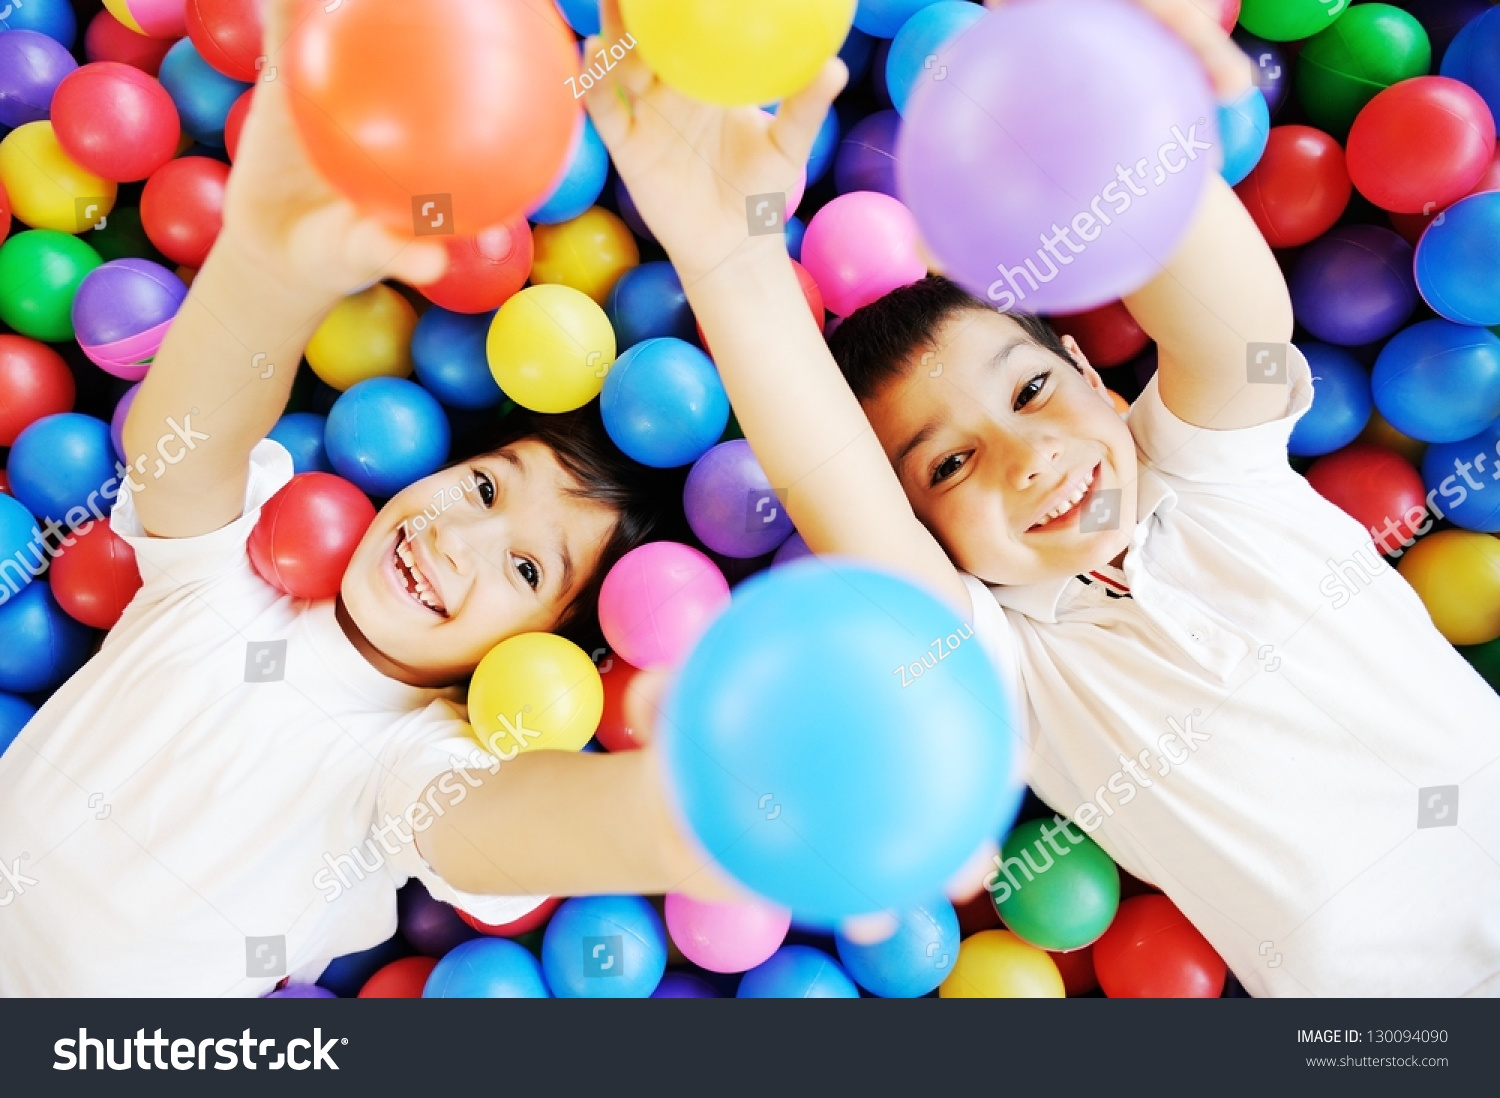 Happy Children Playing Together Having Fun Stock Photo ...